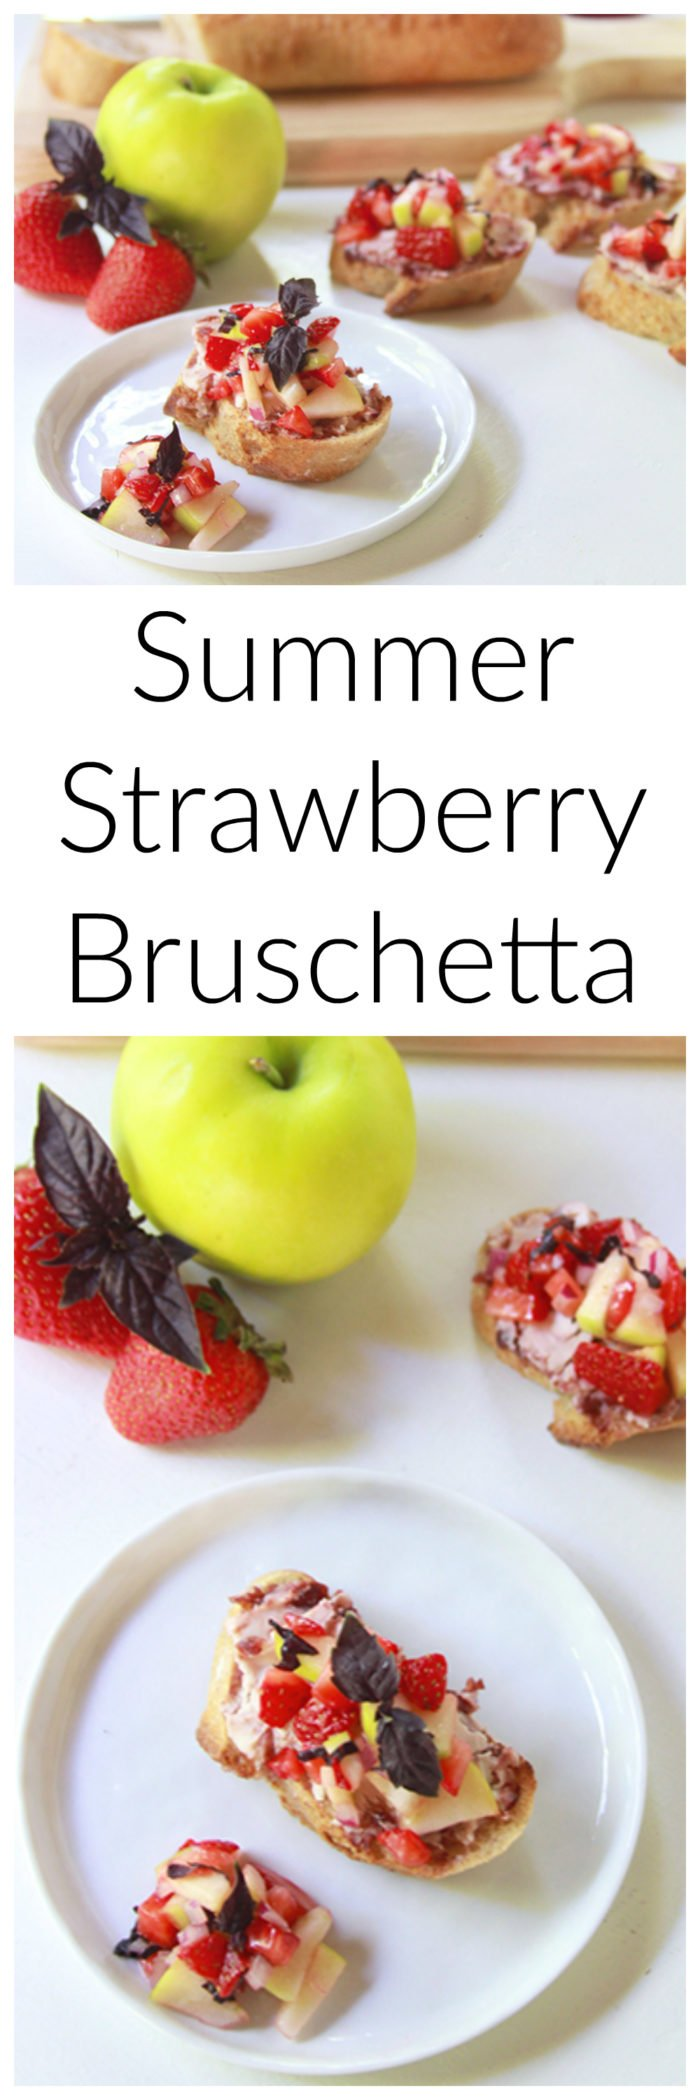 Summer Strawberry Bruschetta on www.cookingwithruthie.com is ever so lovely with the purple basil and tastes amazing!